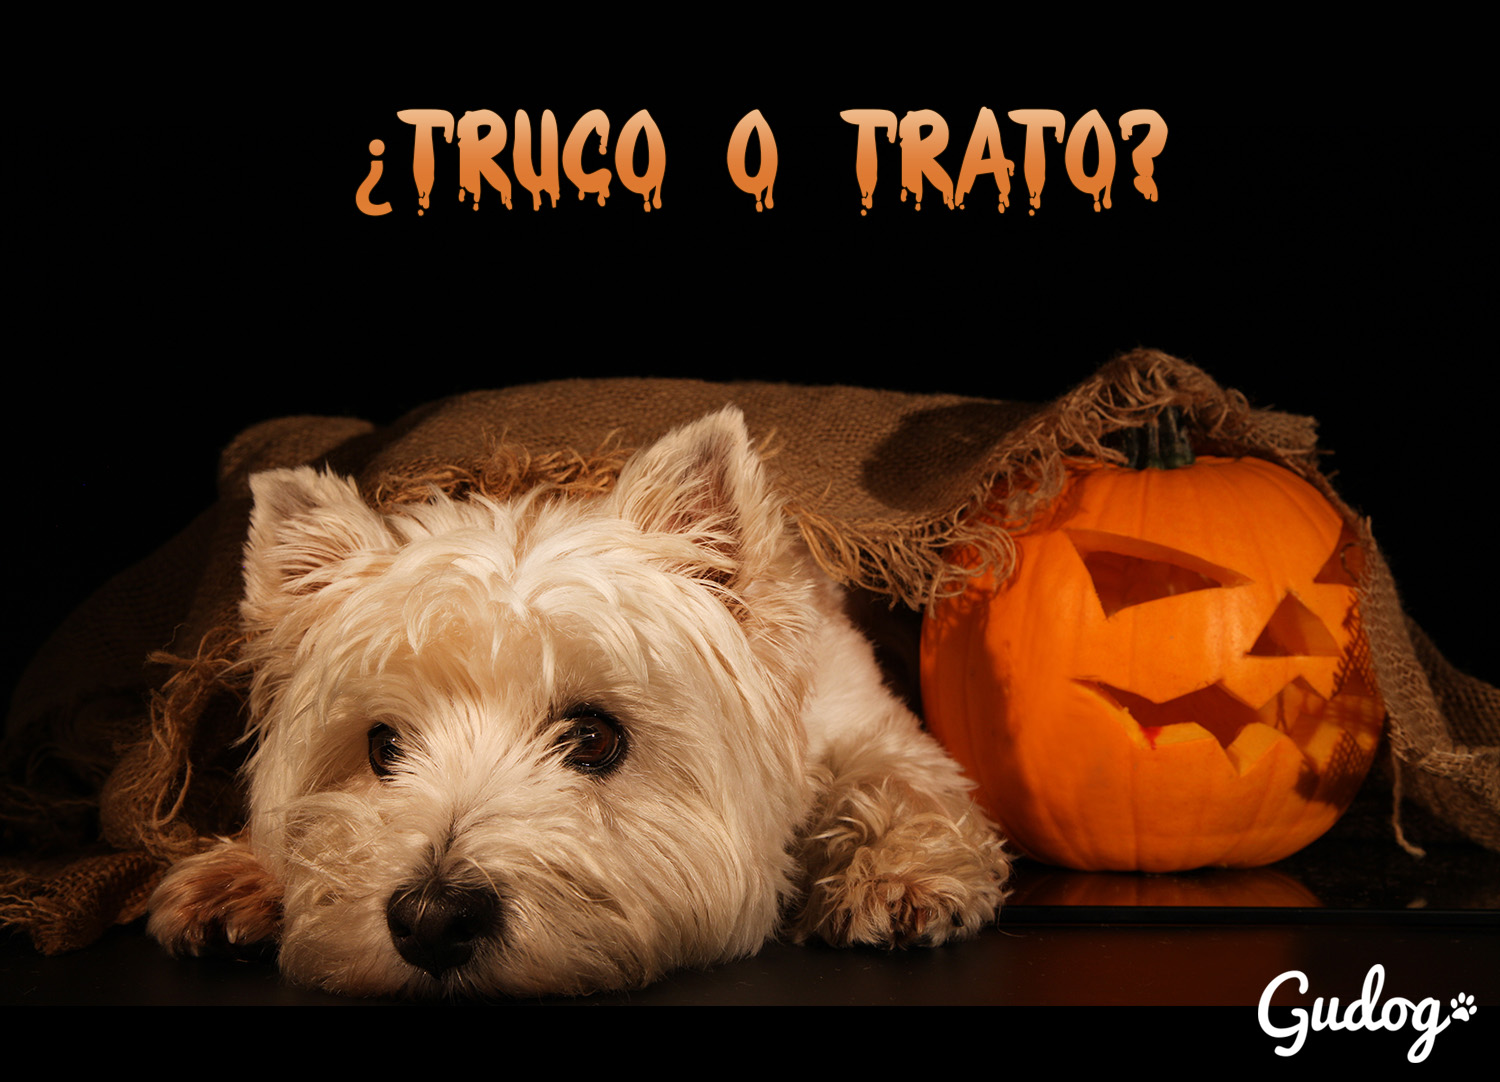 Sweet dog, west highland terrier with Halloween pumpkin